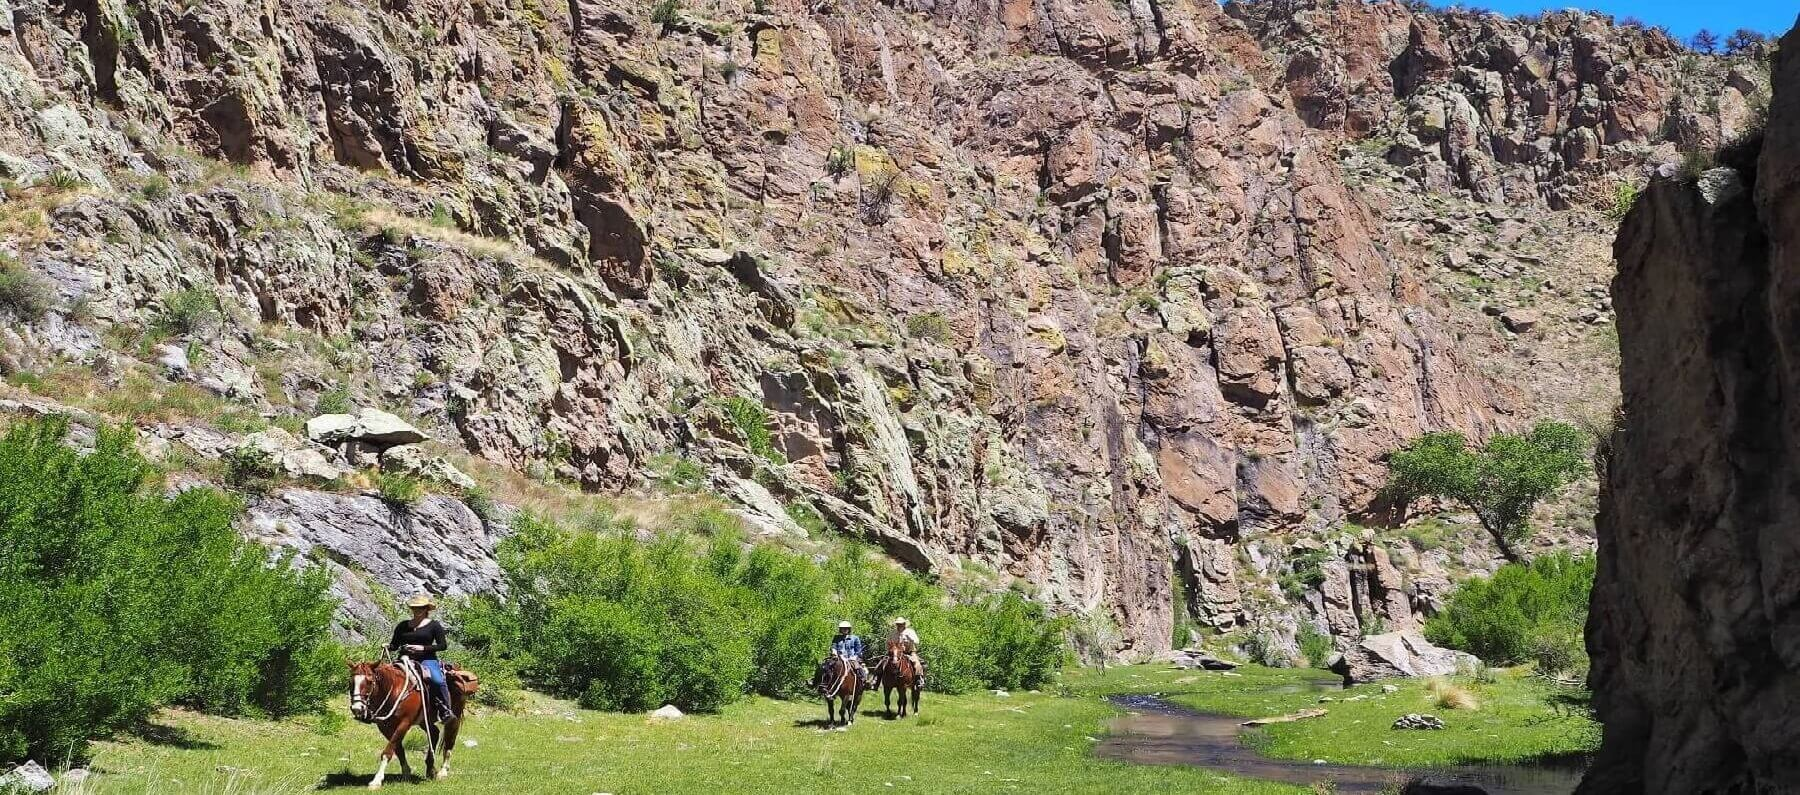 Horses in front of canyon